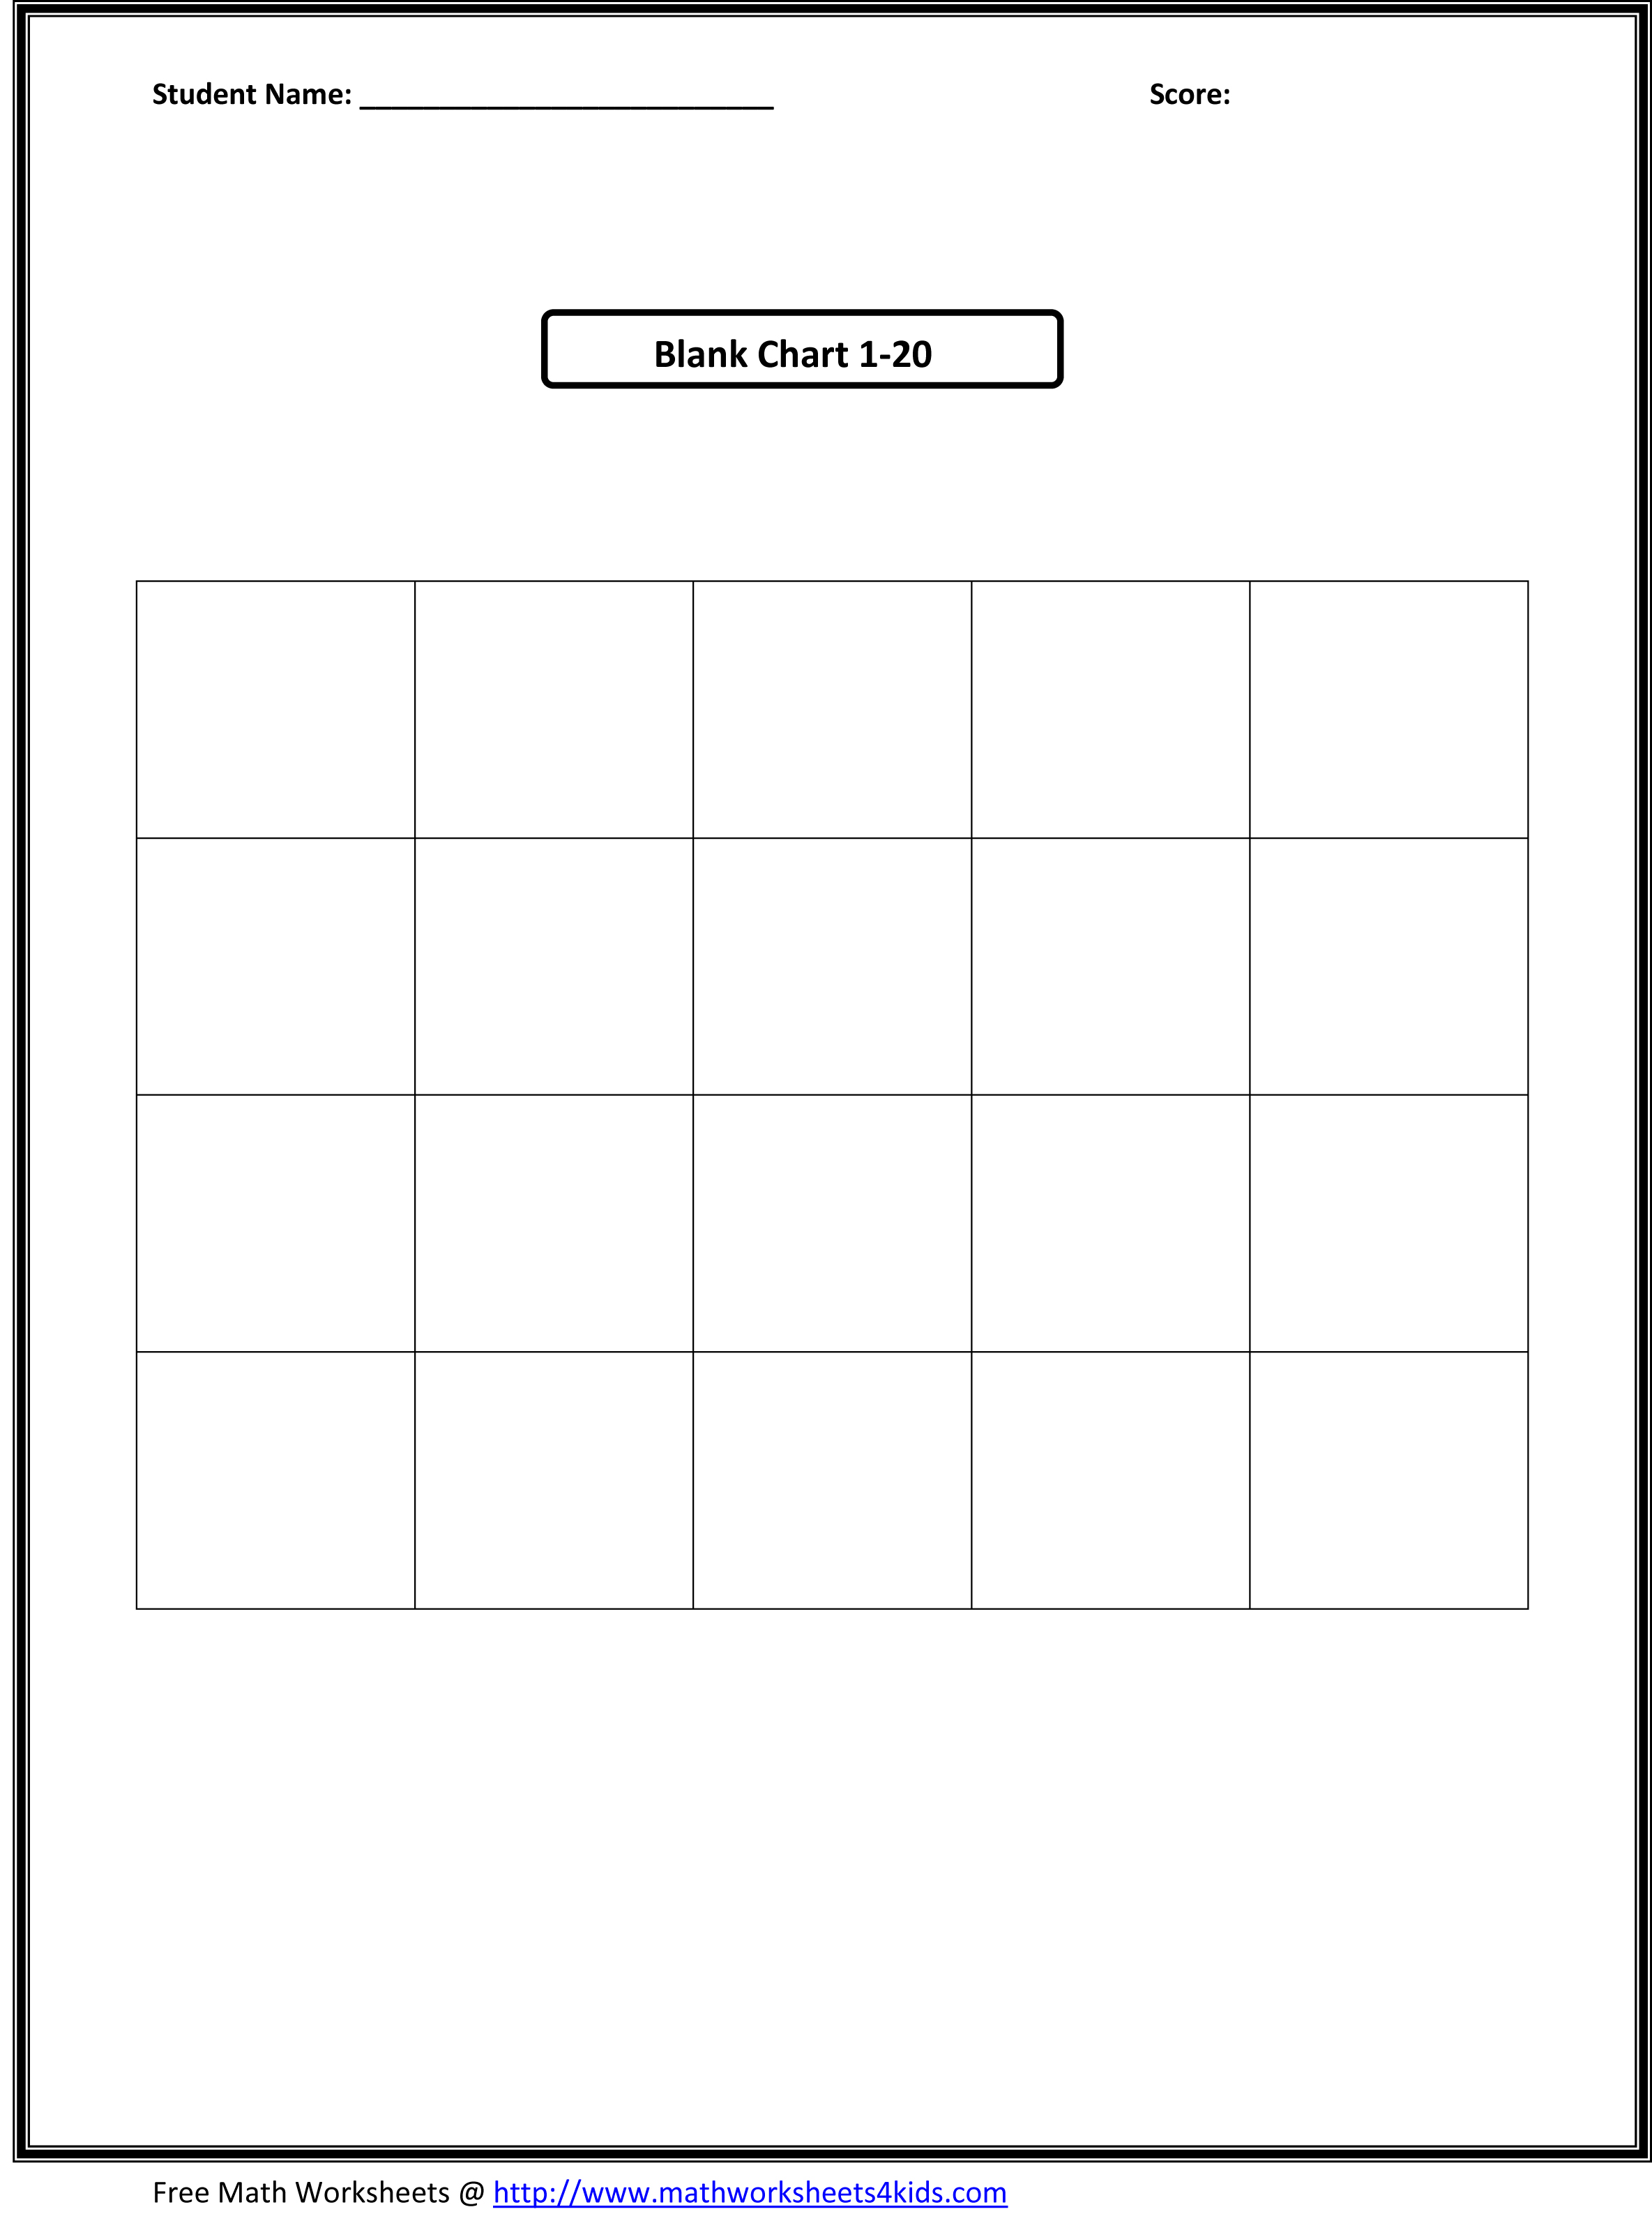 Powers And Roots Worksheets | Free Printable Math Worksheets - Mibb ...